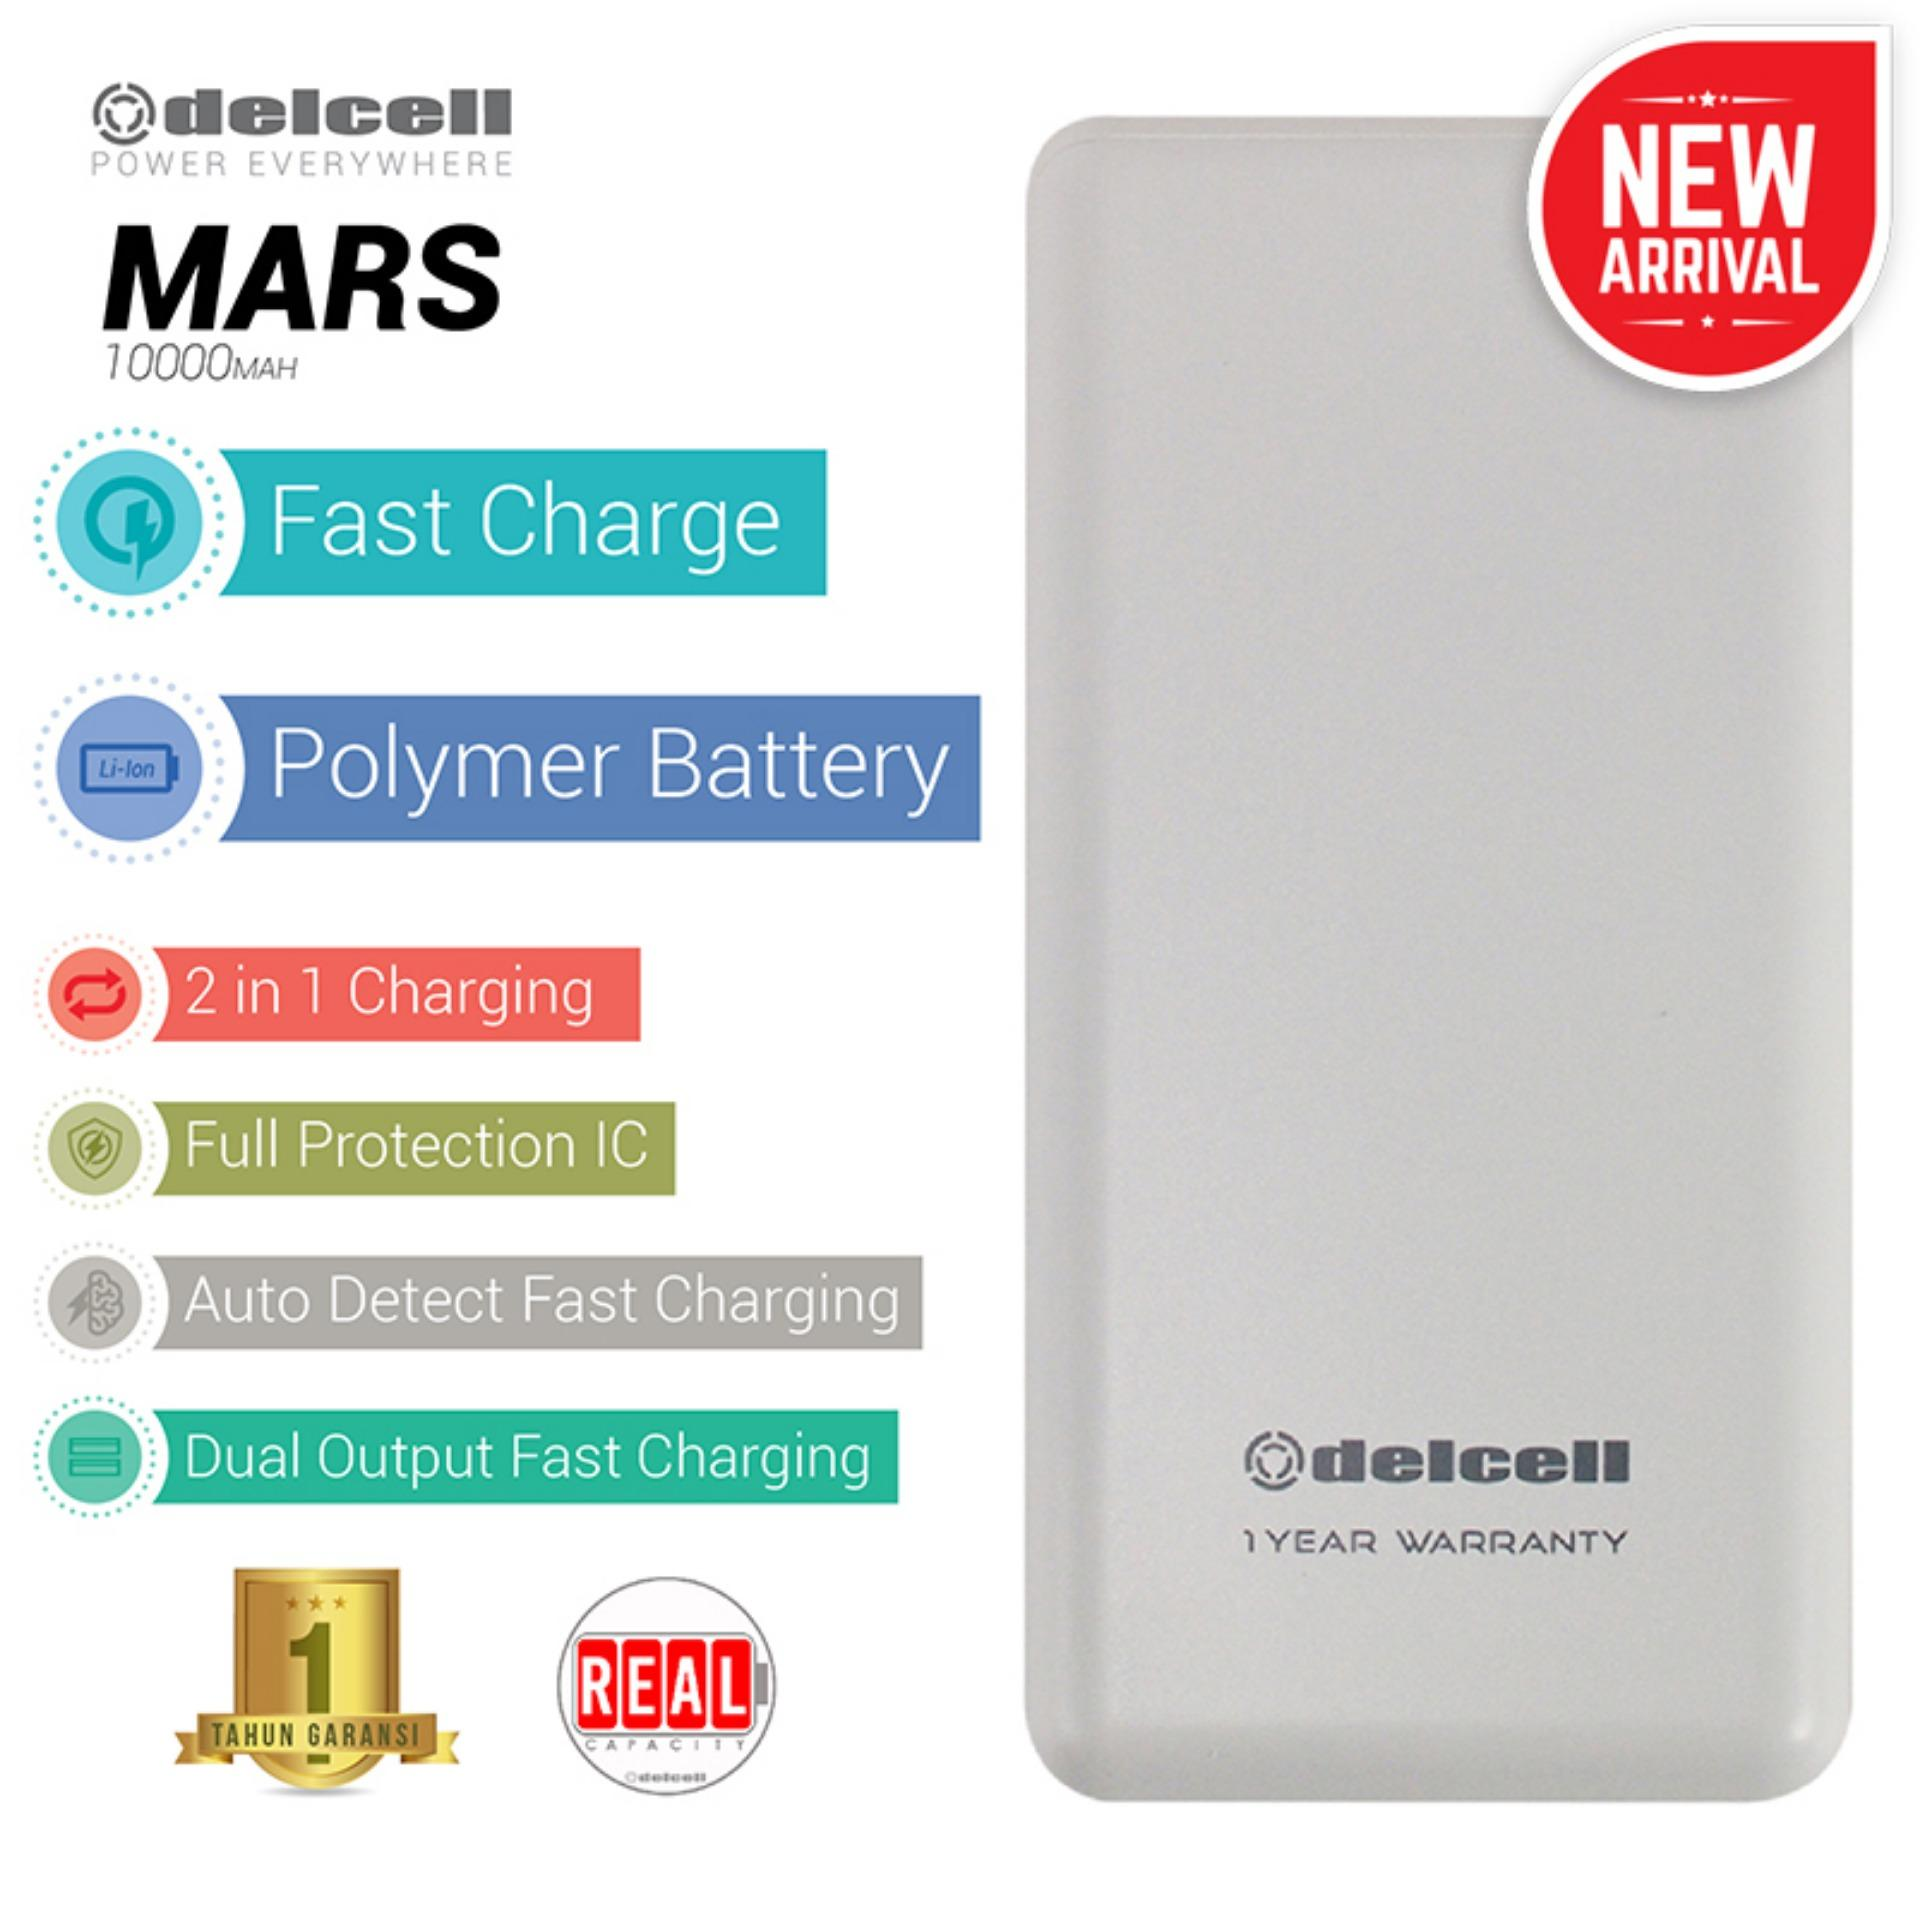 New Arrival Delcell MARS Powerbank 10000mAh Real Capacity Fast Charging Slim Powerbank Polymer Battery - White